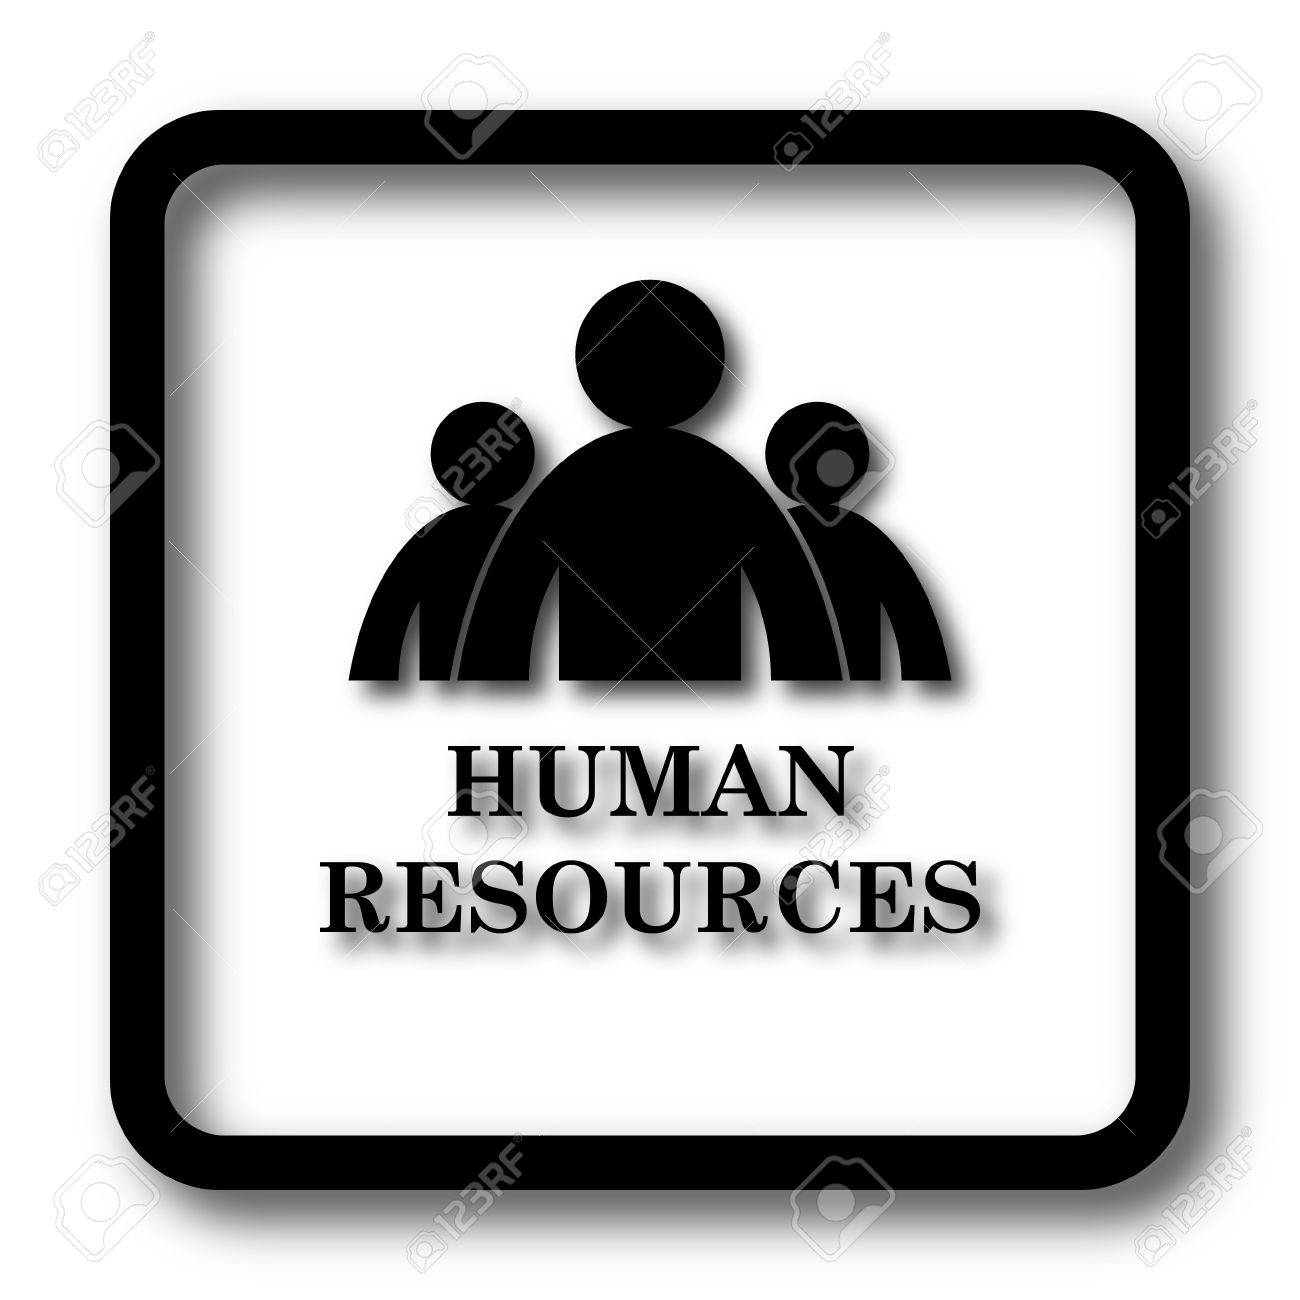 Human Resources Icon Black Website Button On White Background Stock Photo Picture And Royalty Free Image Image 67225126 Check mark icon design icon, black checkmark transparent background png clipart. human resources icon black website button on white background